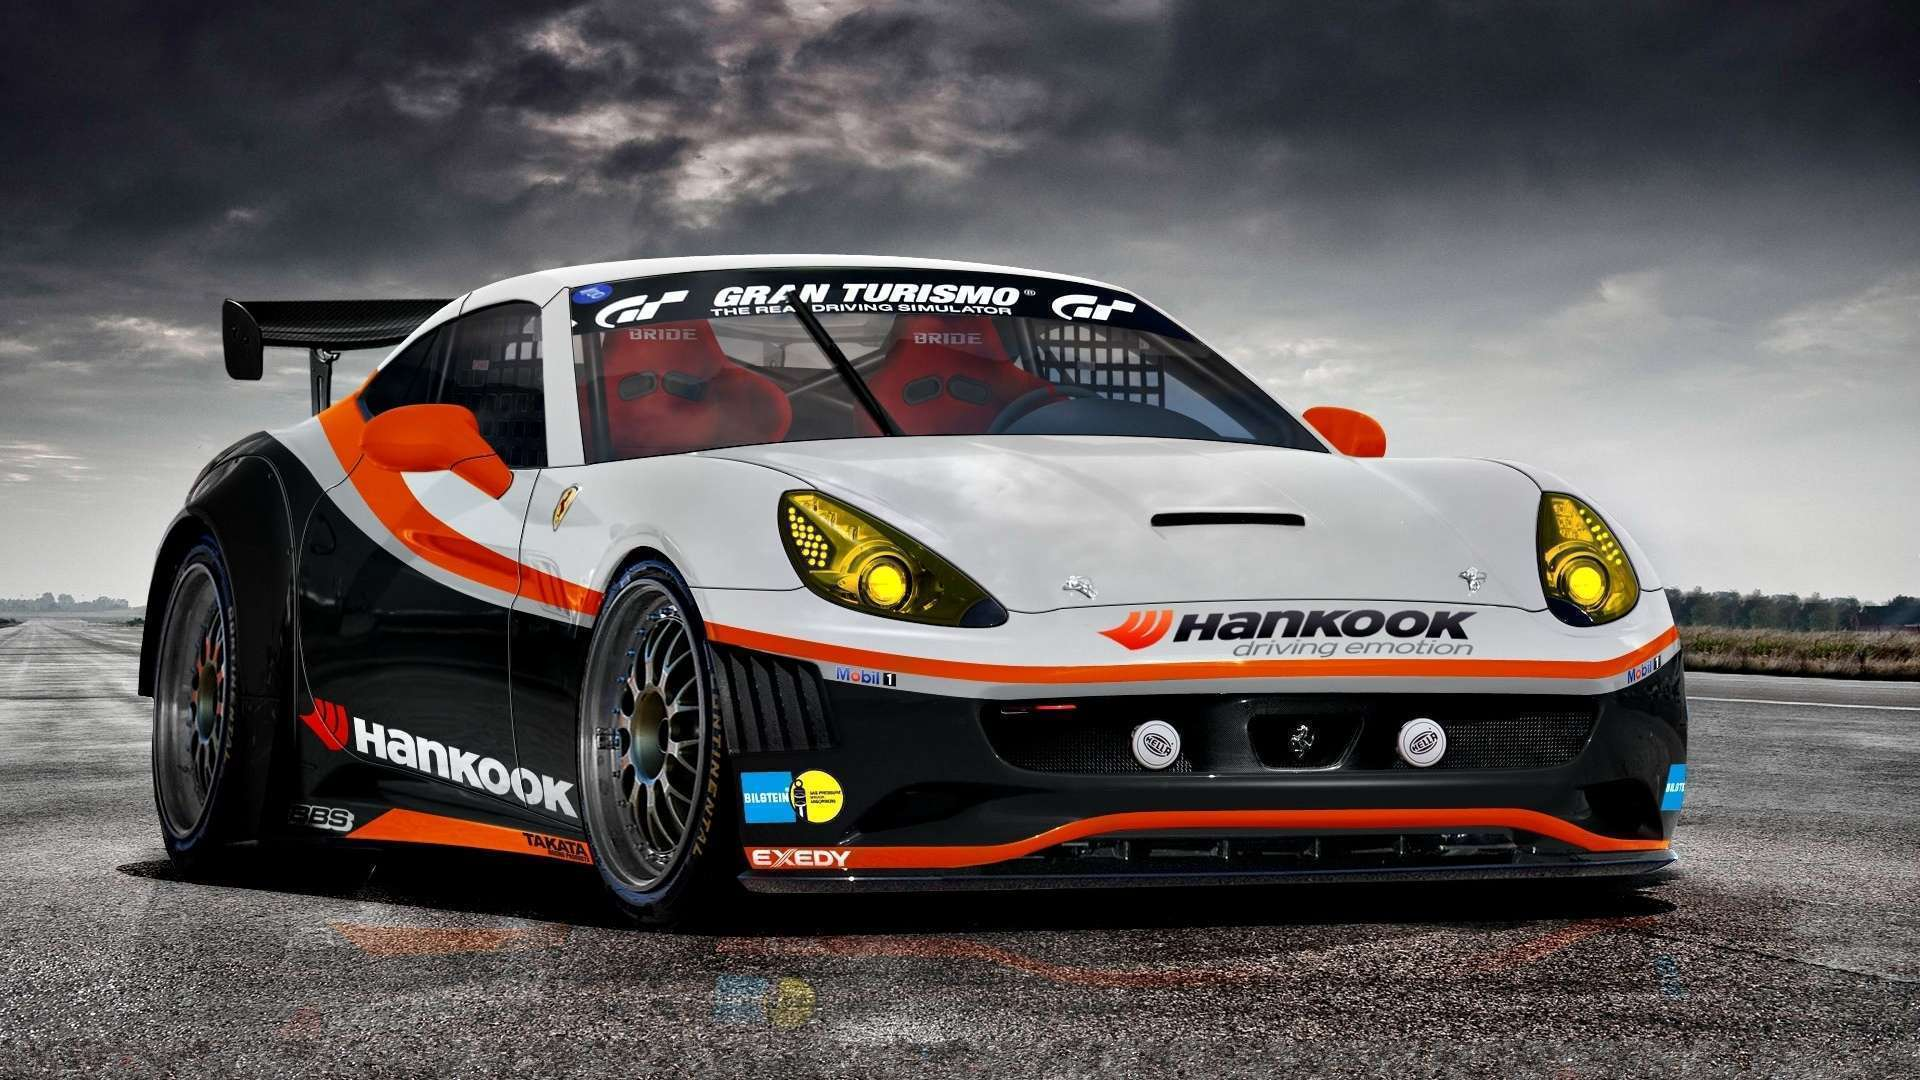 Race Car Wallpaper 1080p Hankook Sport Car Wallpaper Hd Car Wallpapers